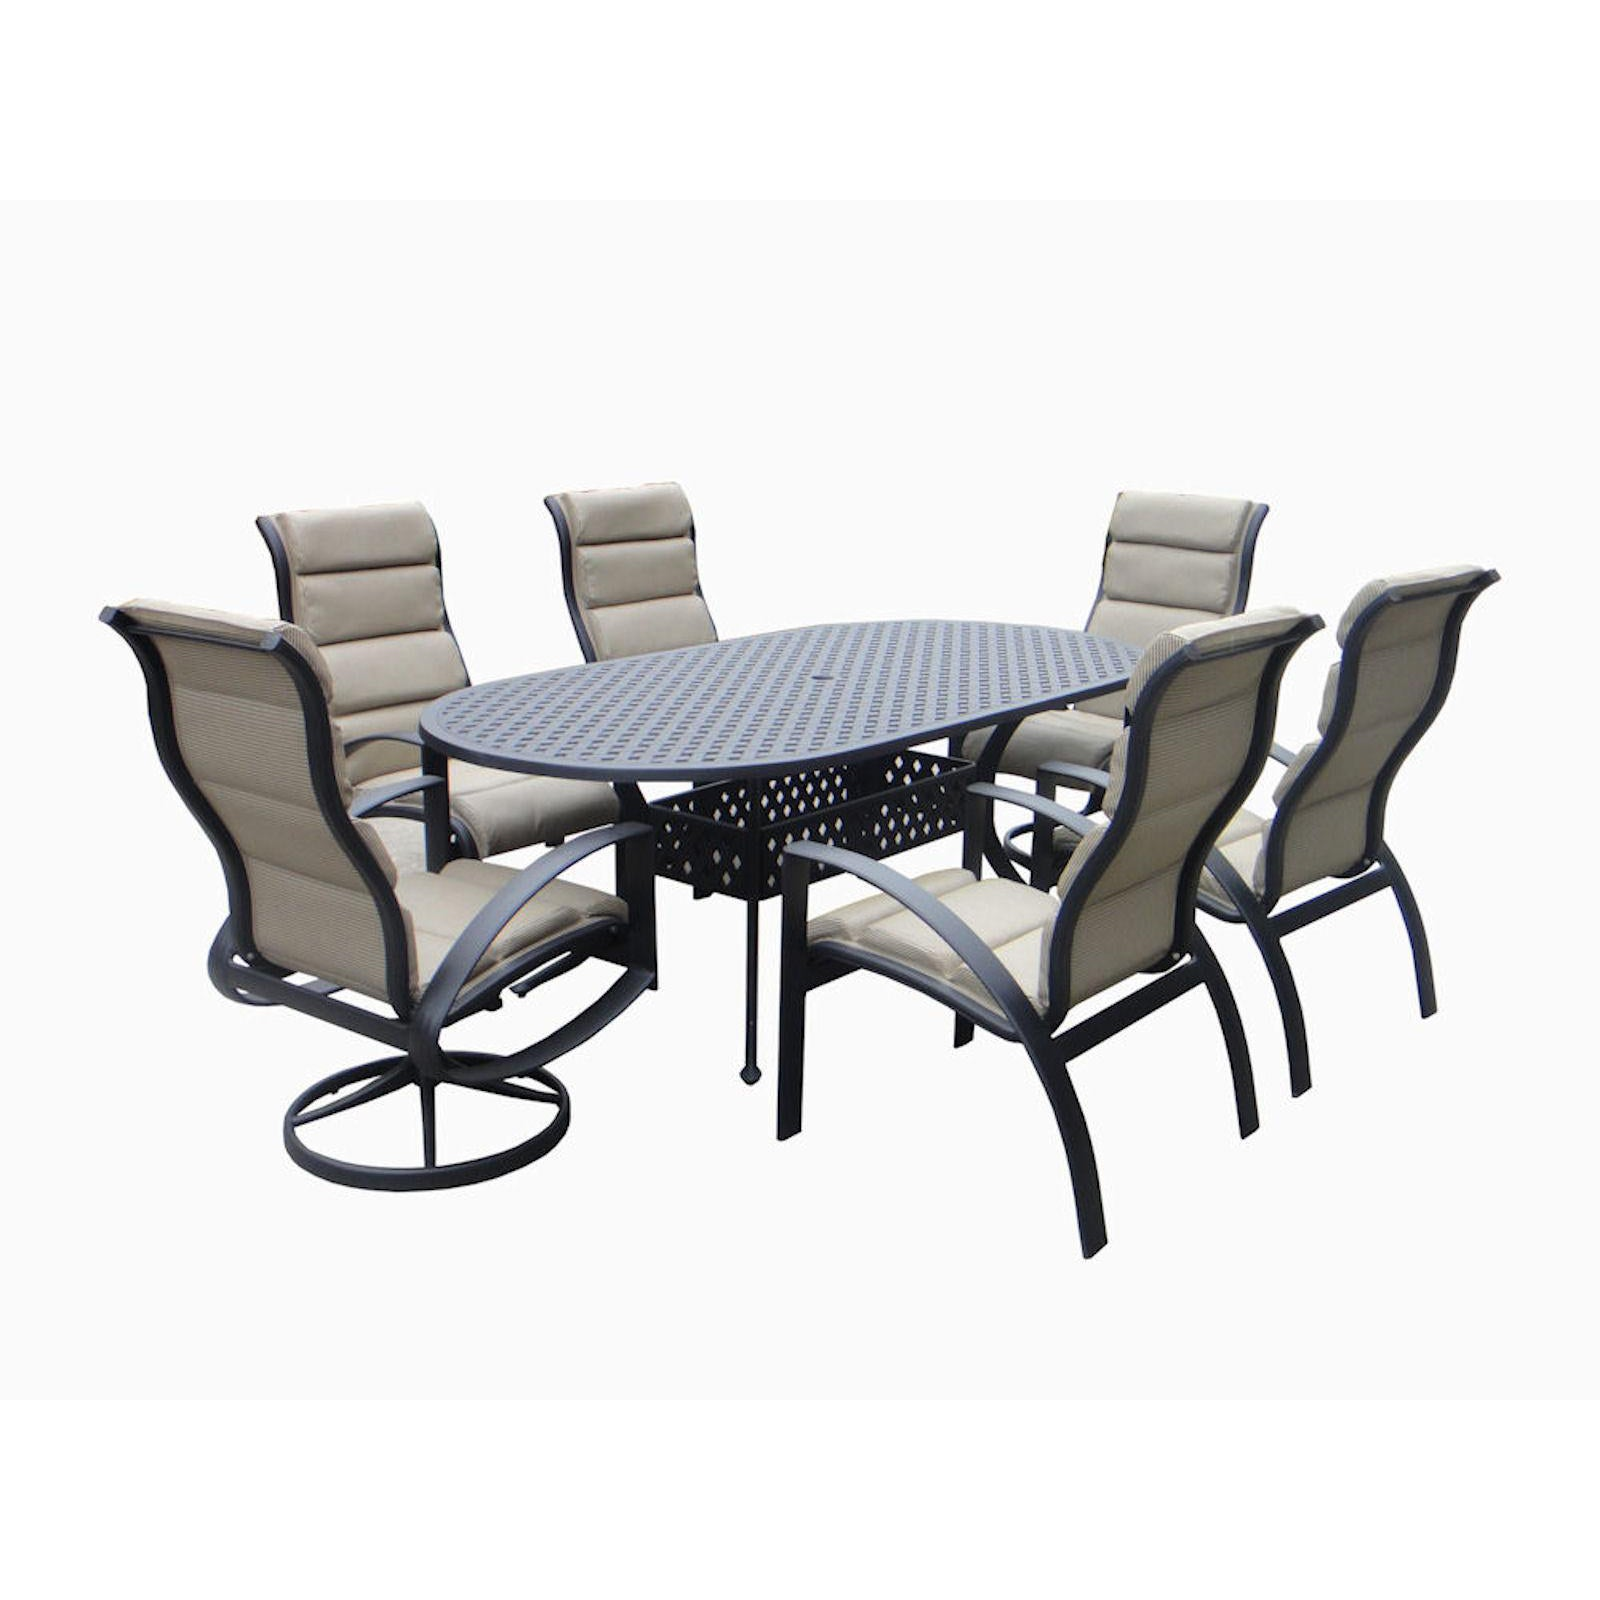 Outdoor Patio Furniture Savannah Ga: Savannah Outdoor Classics Helios Aluminum Sling Patio